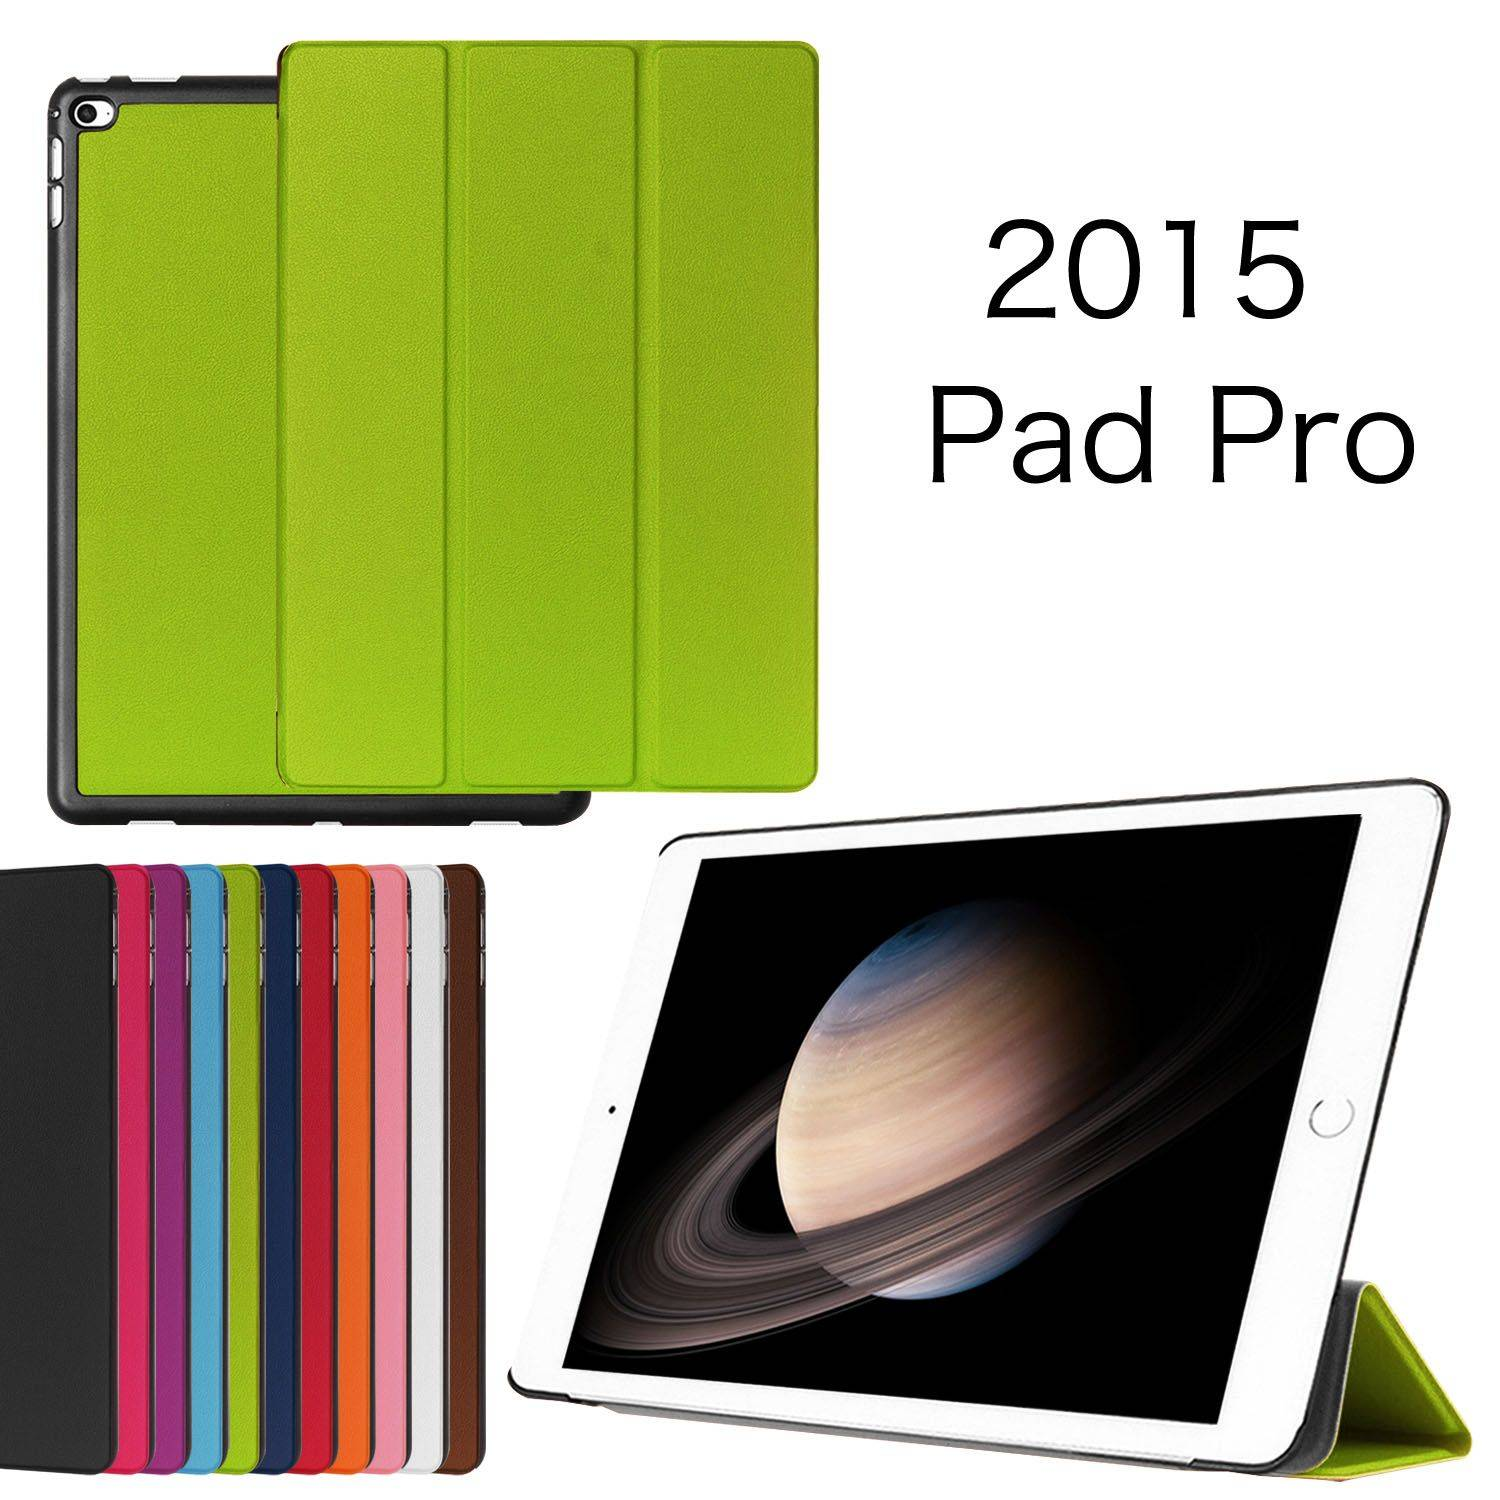 Tri-Fold Ultra-thin Slim Stand Flip PU Leather Case Tablet Cover Shell for iPad Pro Mini 4 IPROC03